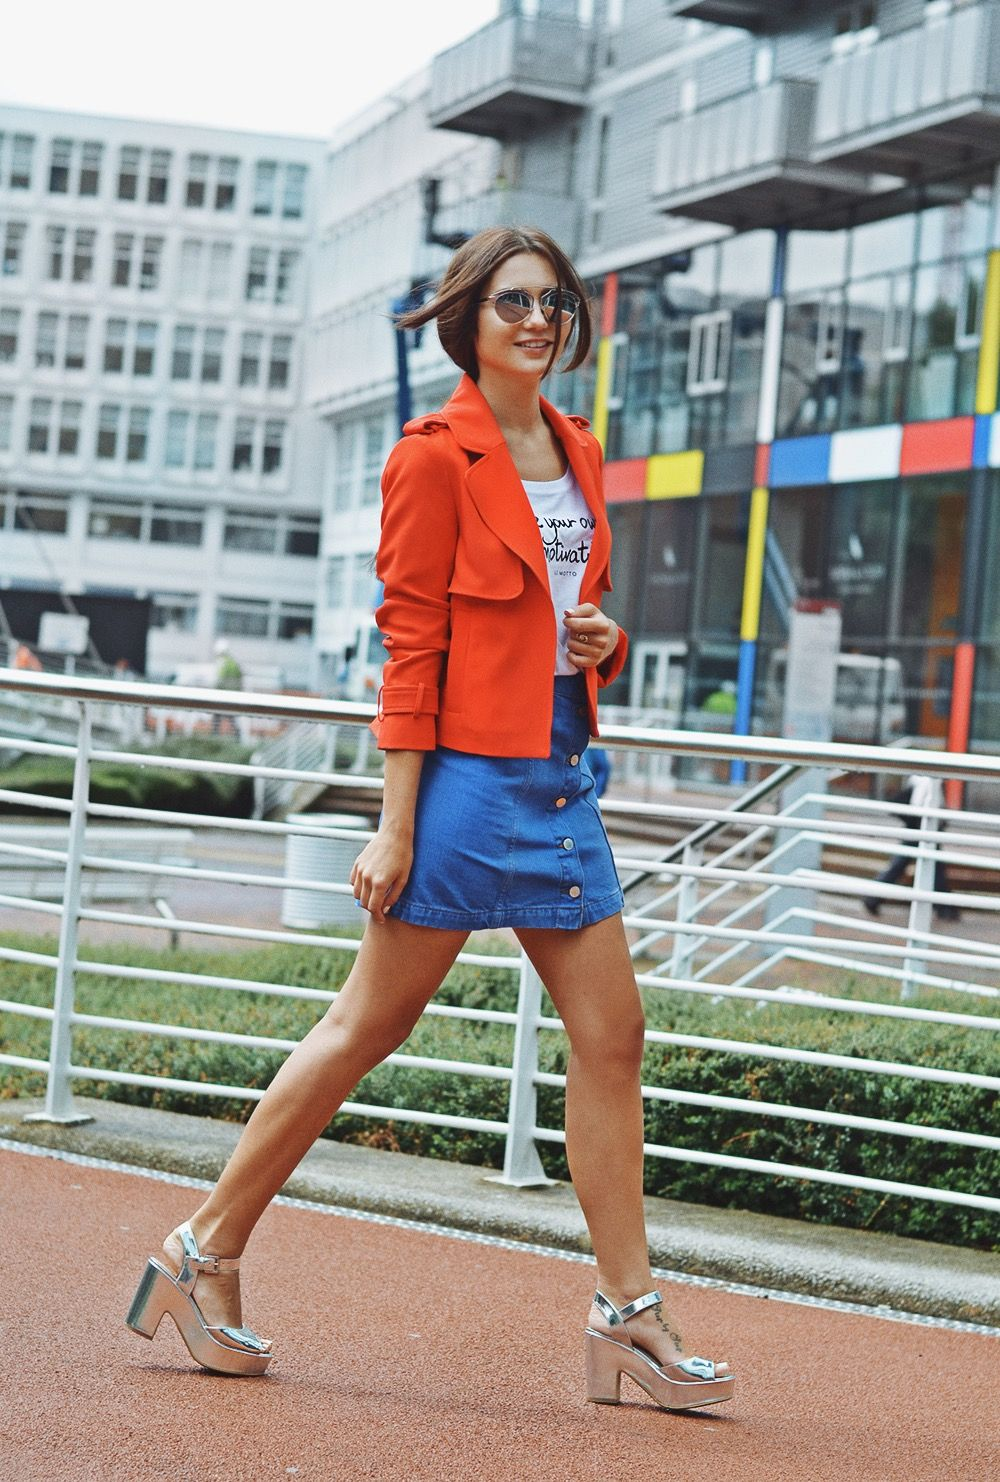 Super cool style & a fun way to change up outfits with orange and silver! <3 SHOP THE LOOK <3 #pleenq